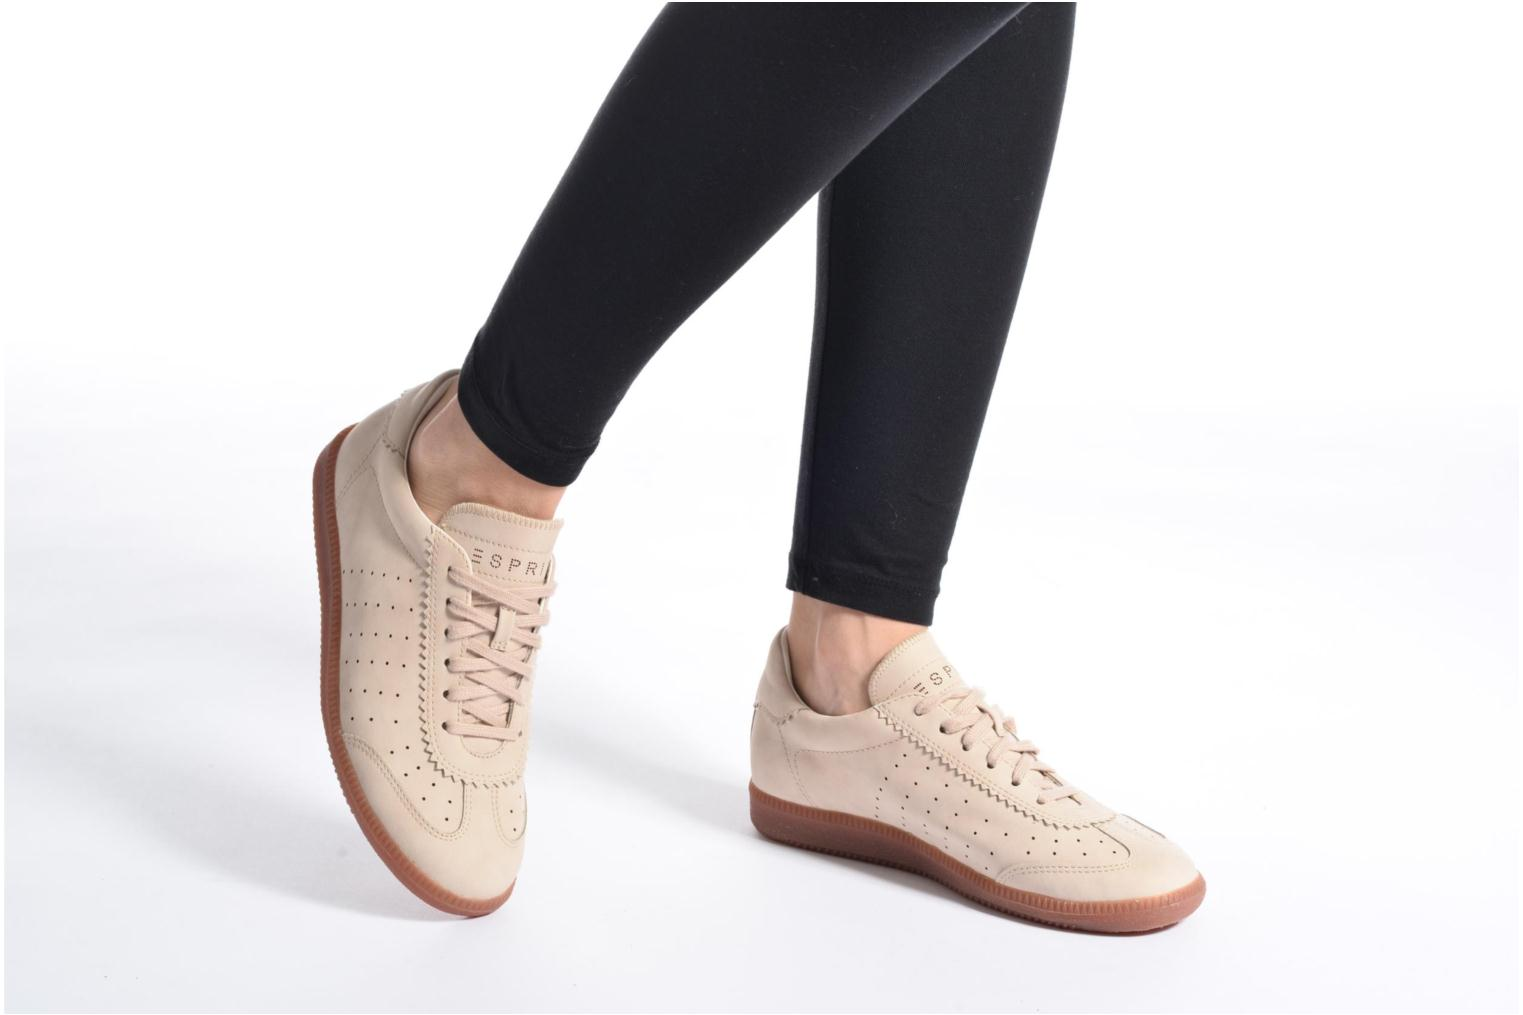 Sneakers Esprit Trainee Lace Up Beige se forneden